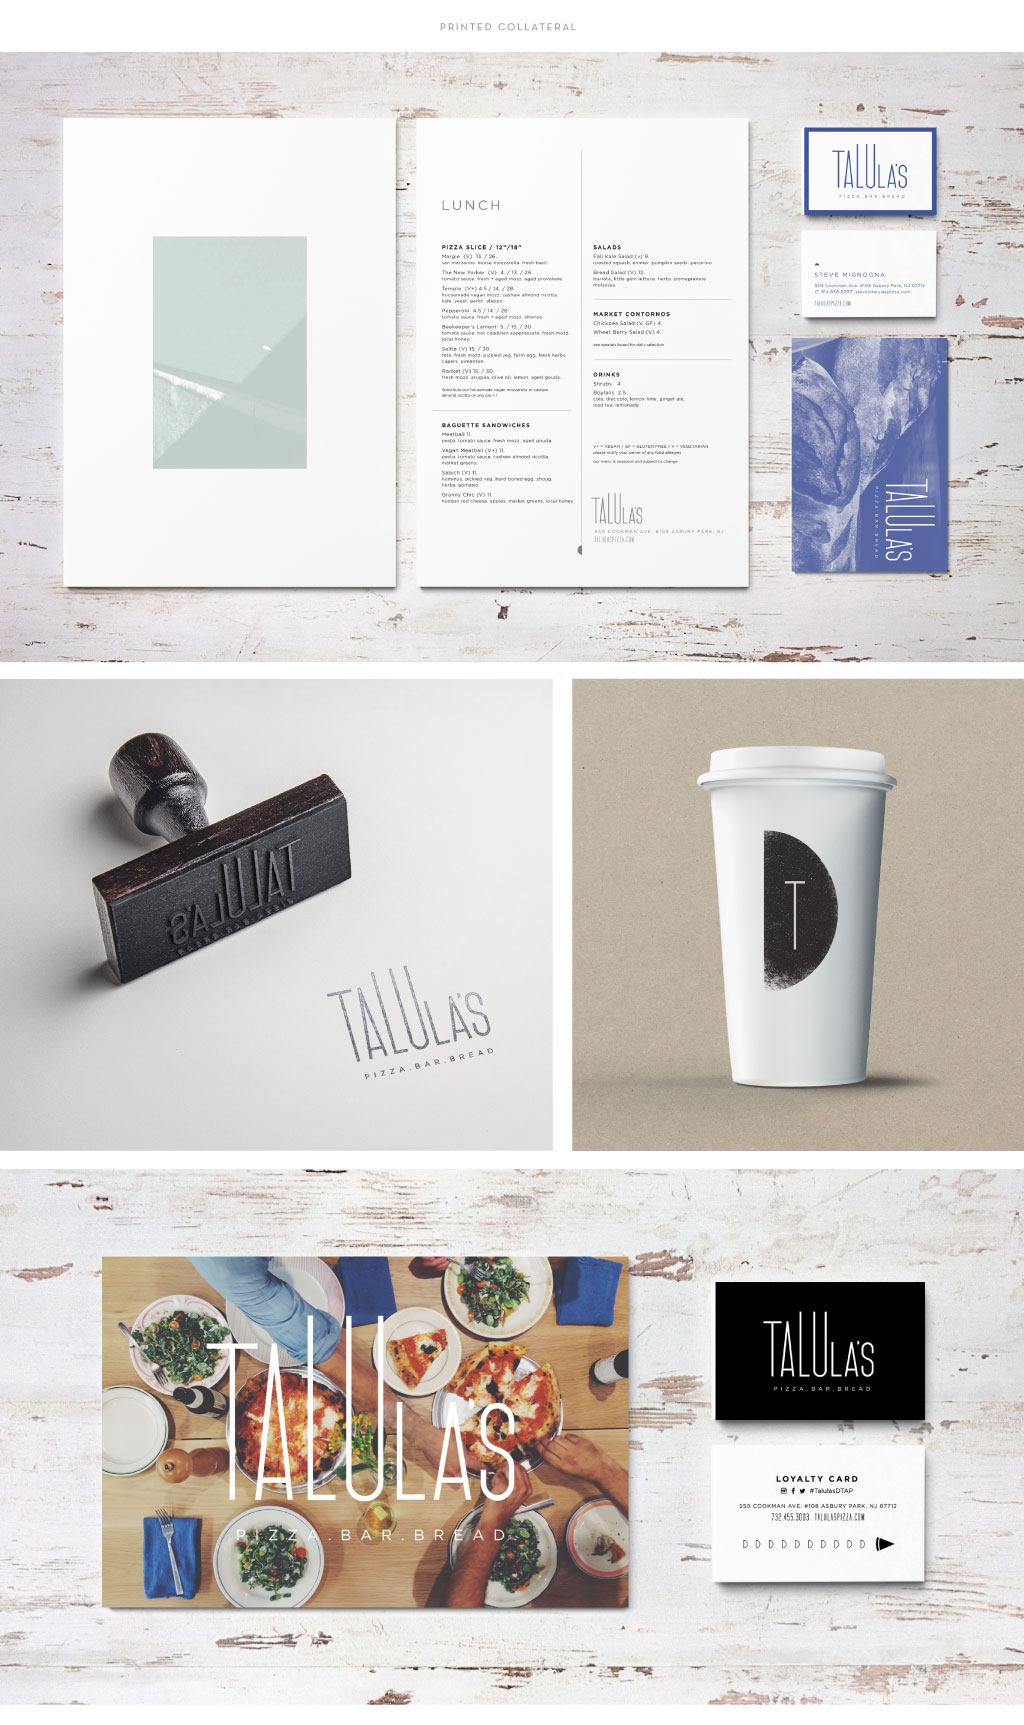 Talula's menu print collateral design by M studio